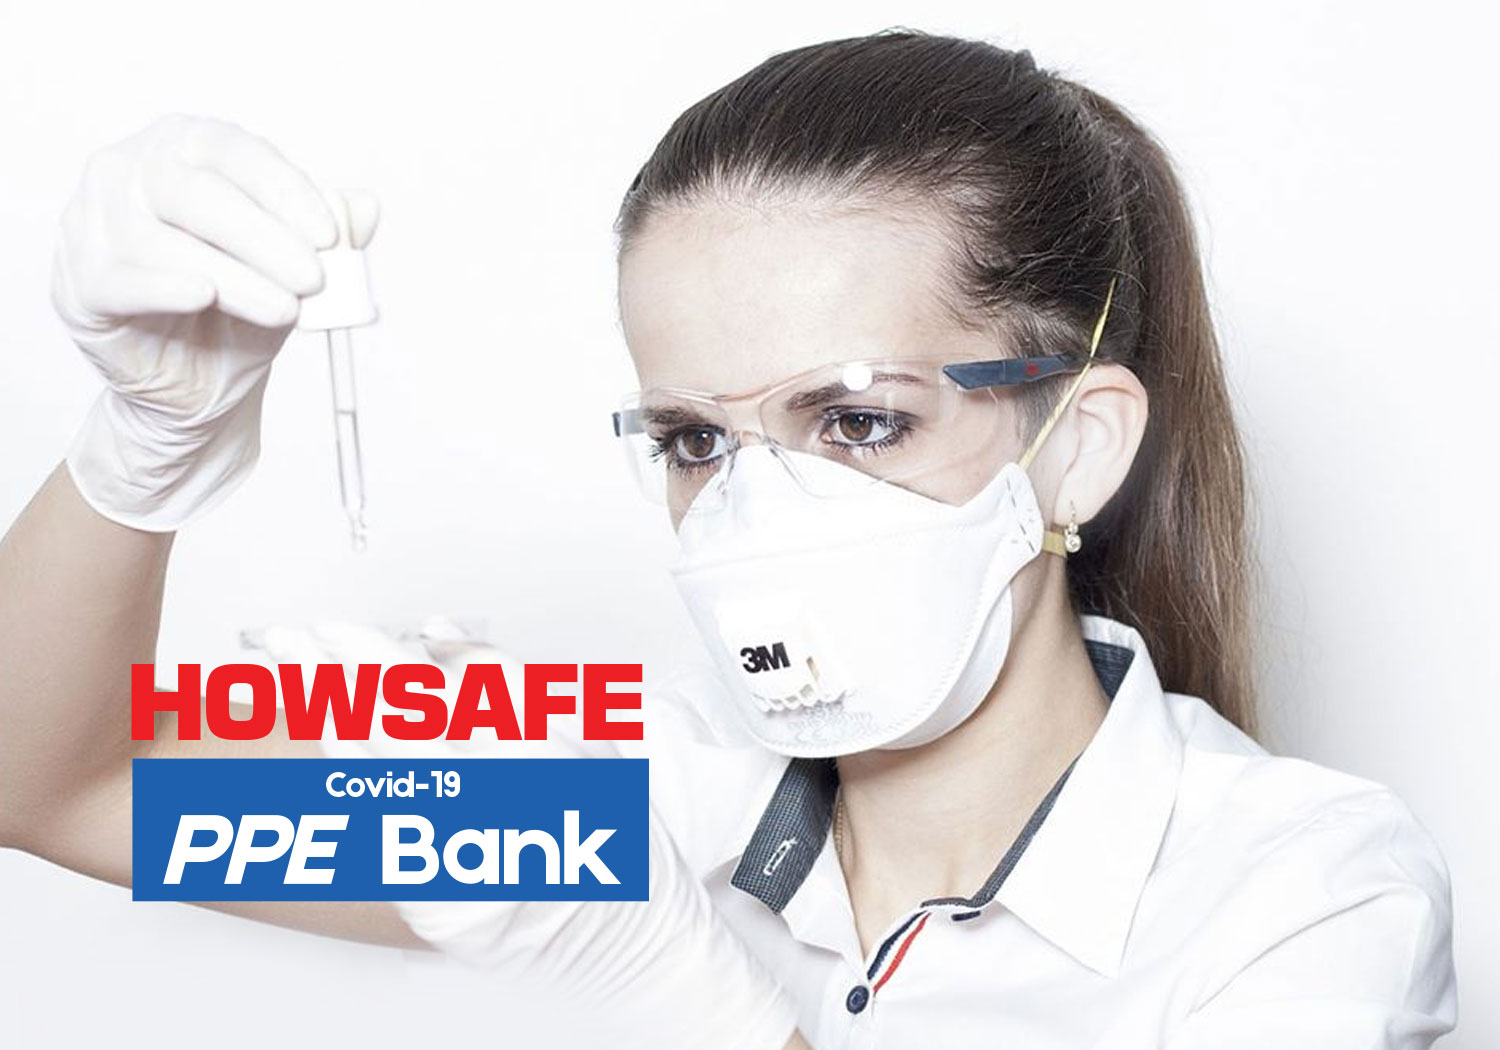 Howsafe PPE Bank helps communities fight COVID-19